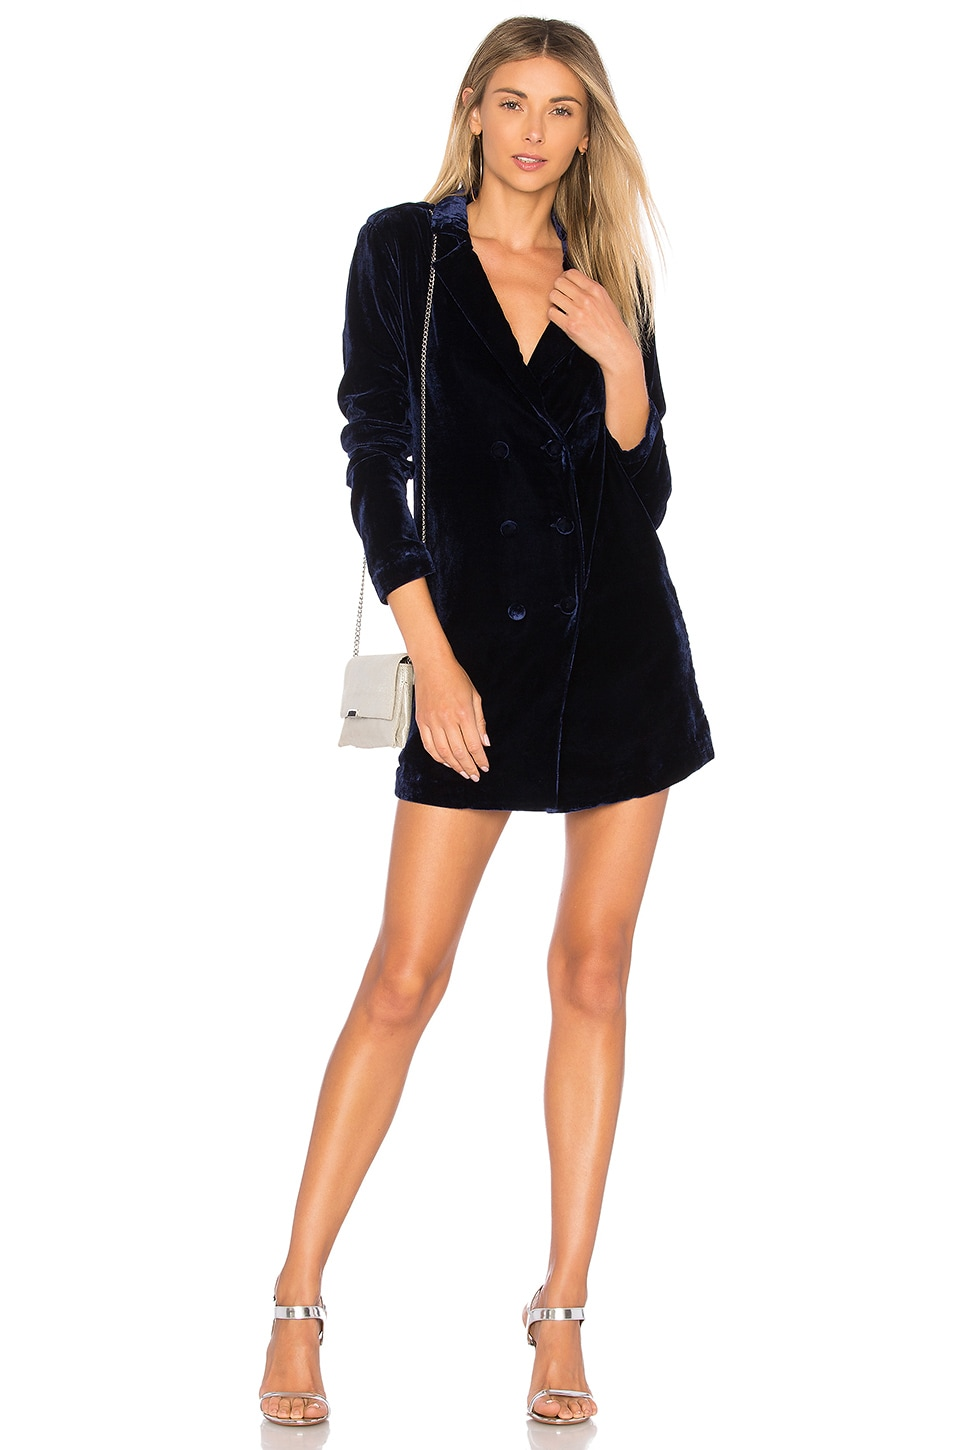 L'Academie The Military Dress in Navy